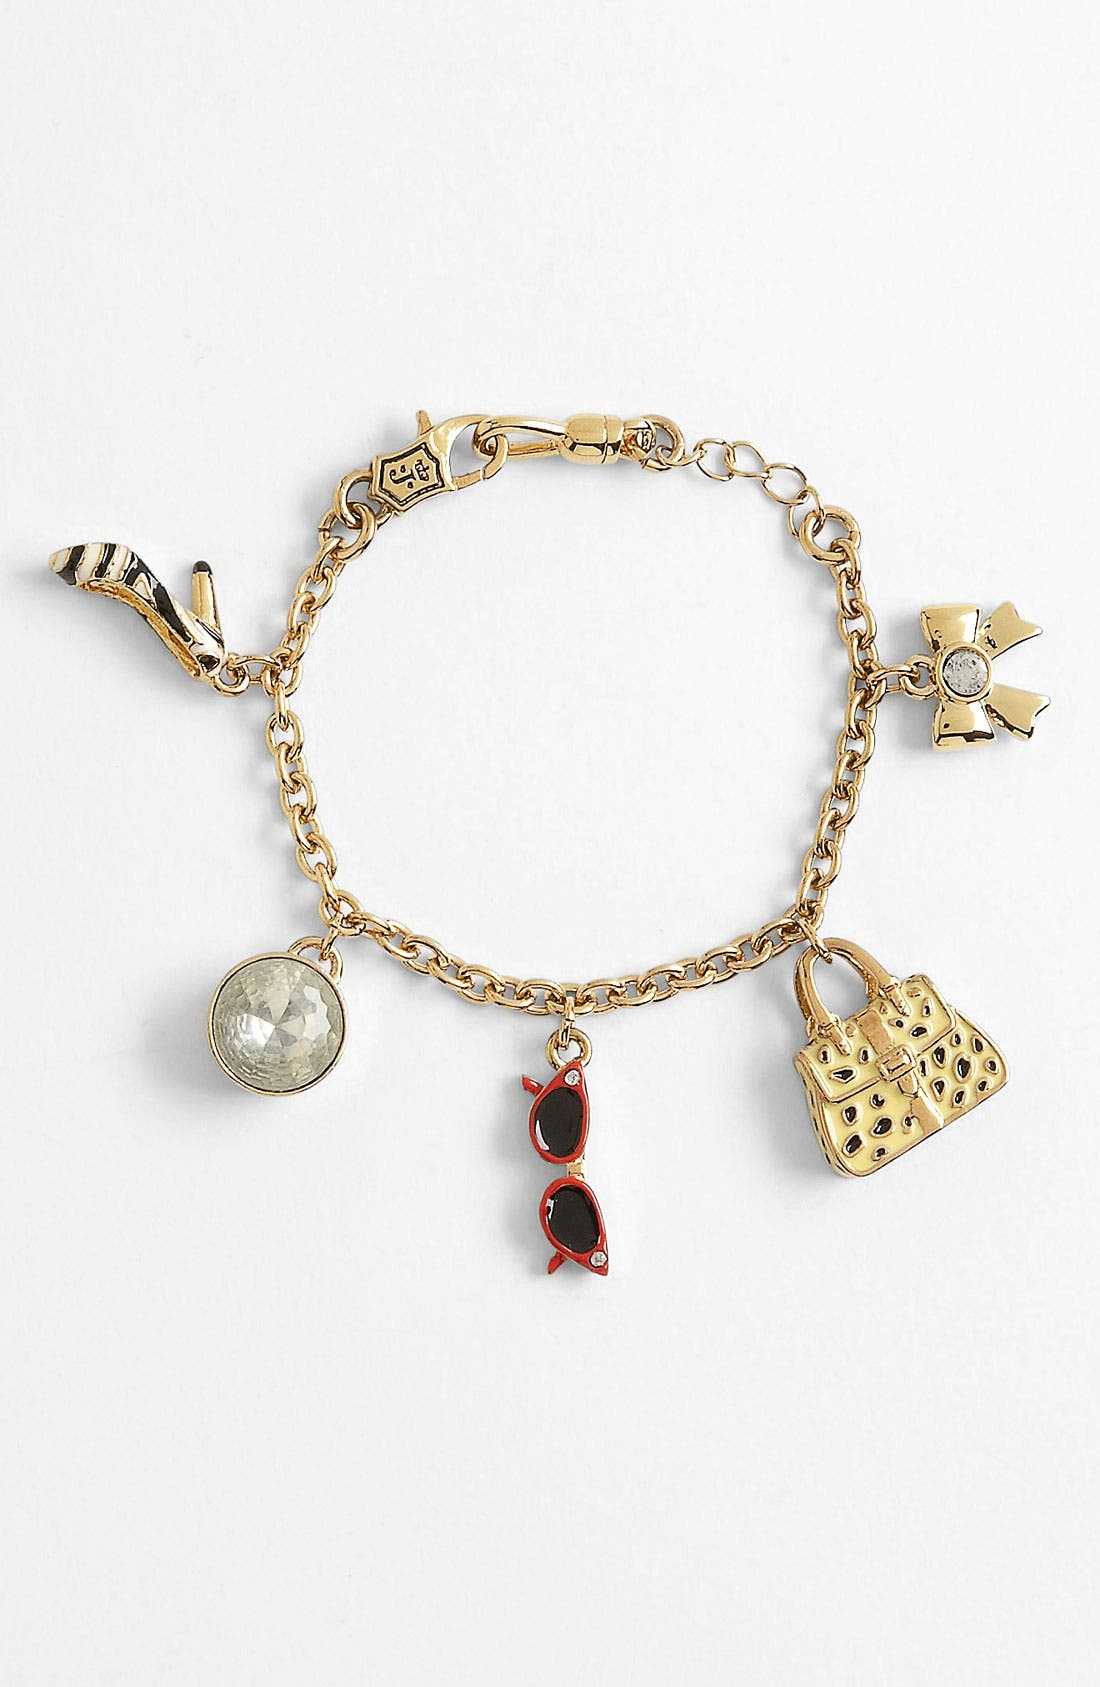 Alternate Image 1 Selected - Juicy Couture Charm Bracelet (Girls)